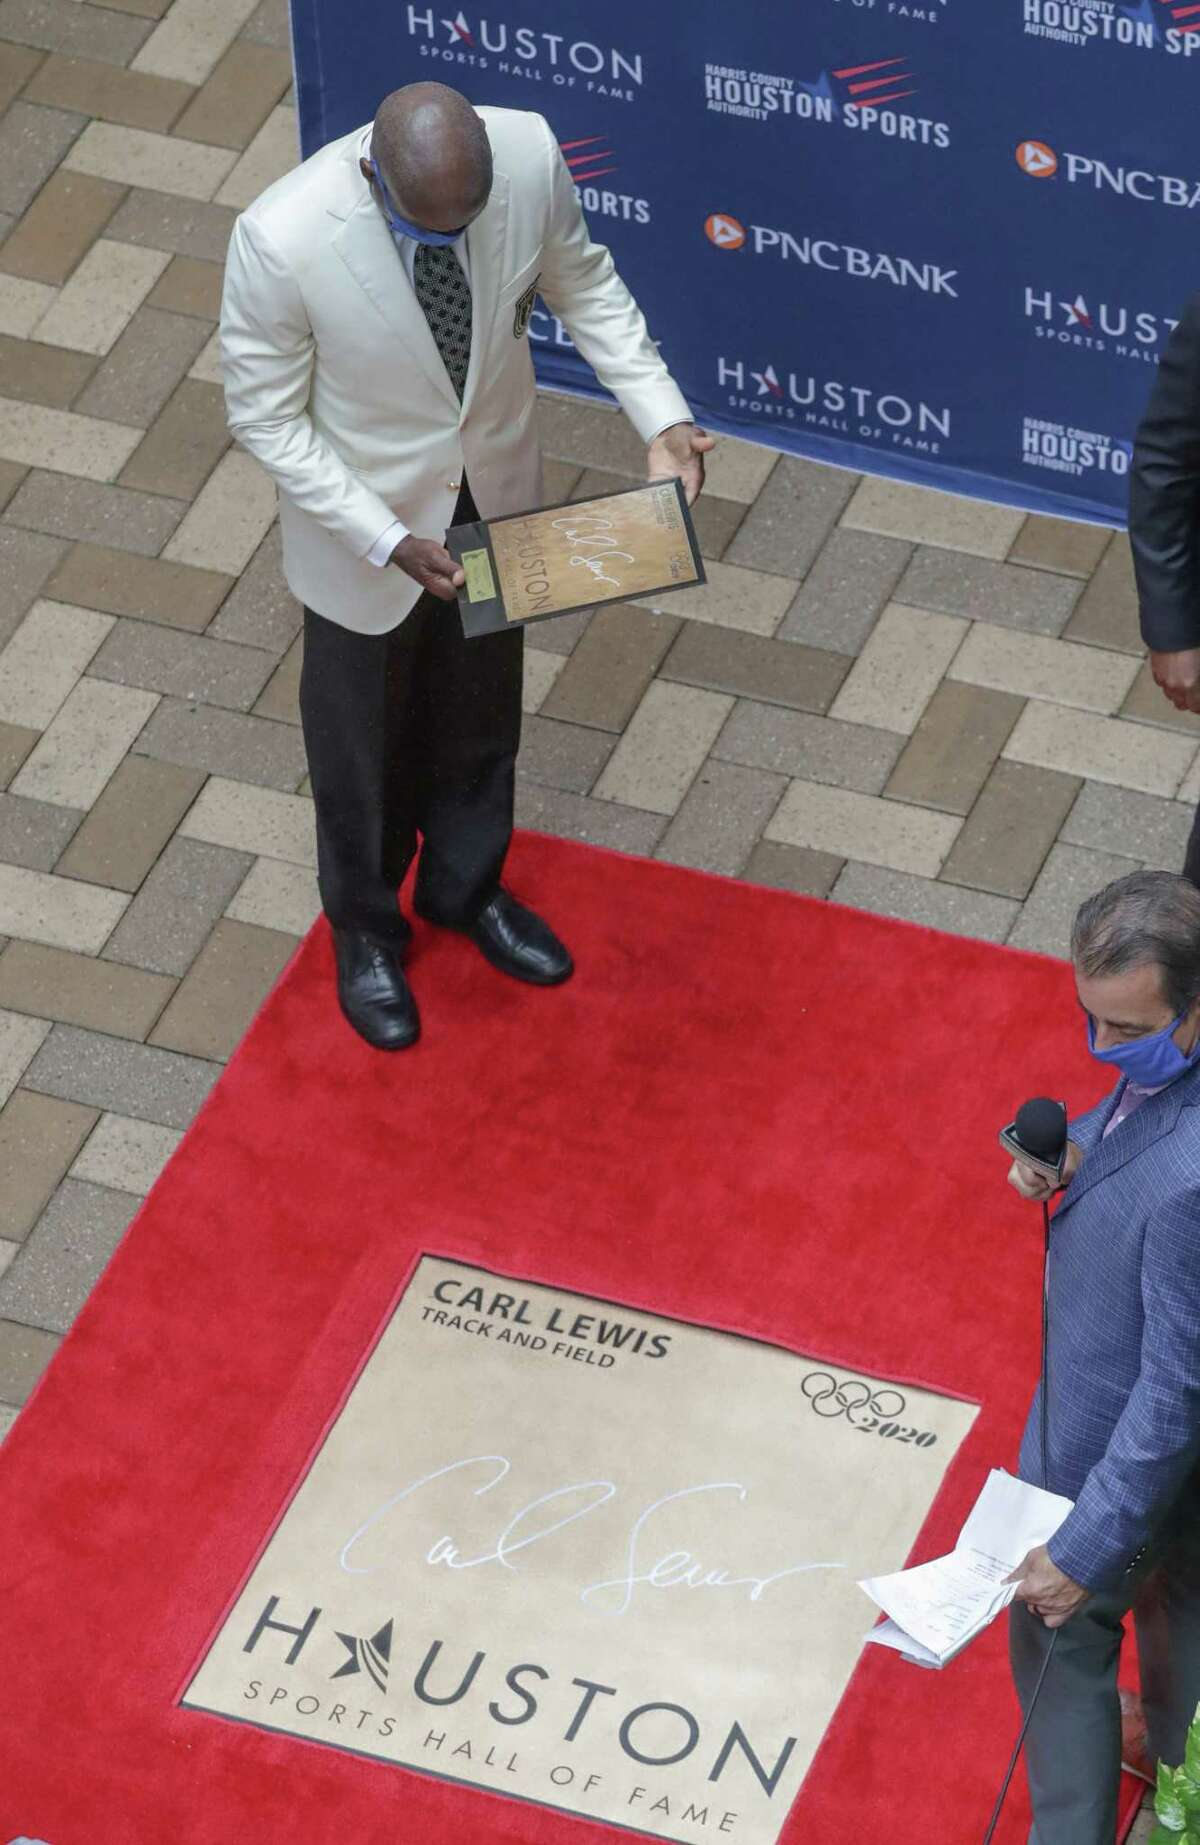 Carl Lewis looks at his walk of fame plaque during the Houston Sports Hall of Fame Ring Presentation and Walk of Fame Unveiling Thursday, Jan. 21, 2021, in Houston. Lewis, Mary Lou Retton, Rudy Tomjanovich and the late Bob Lanier were honored at the event.